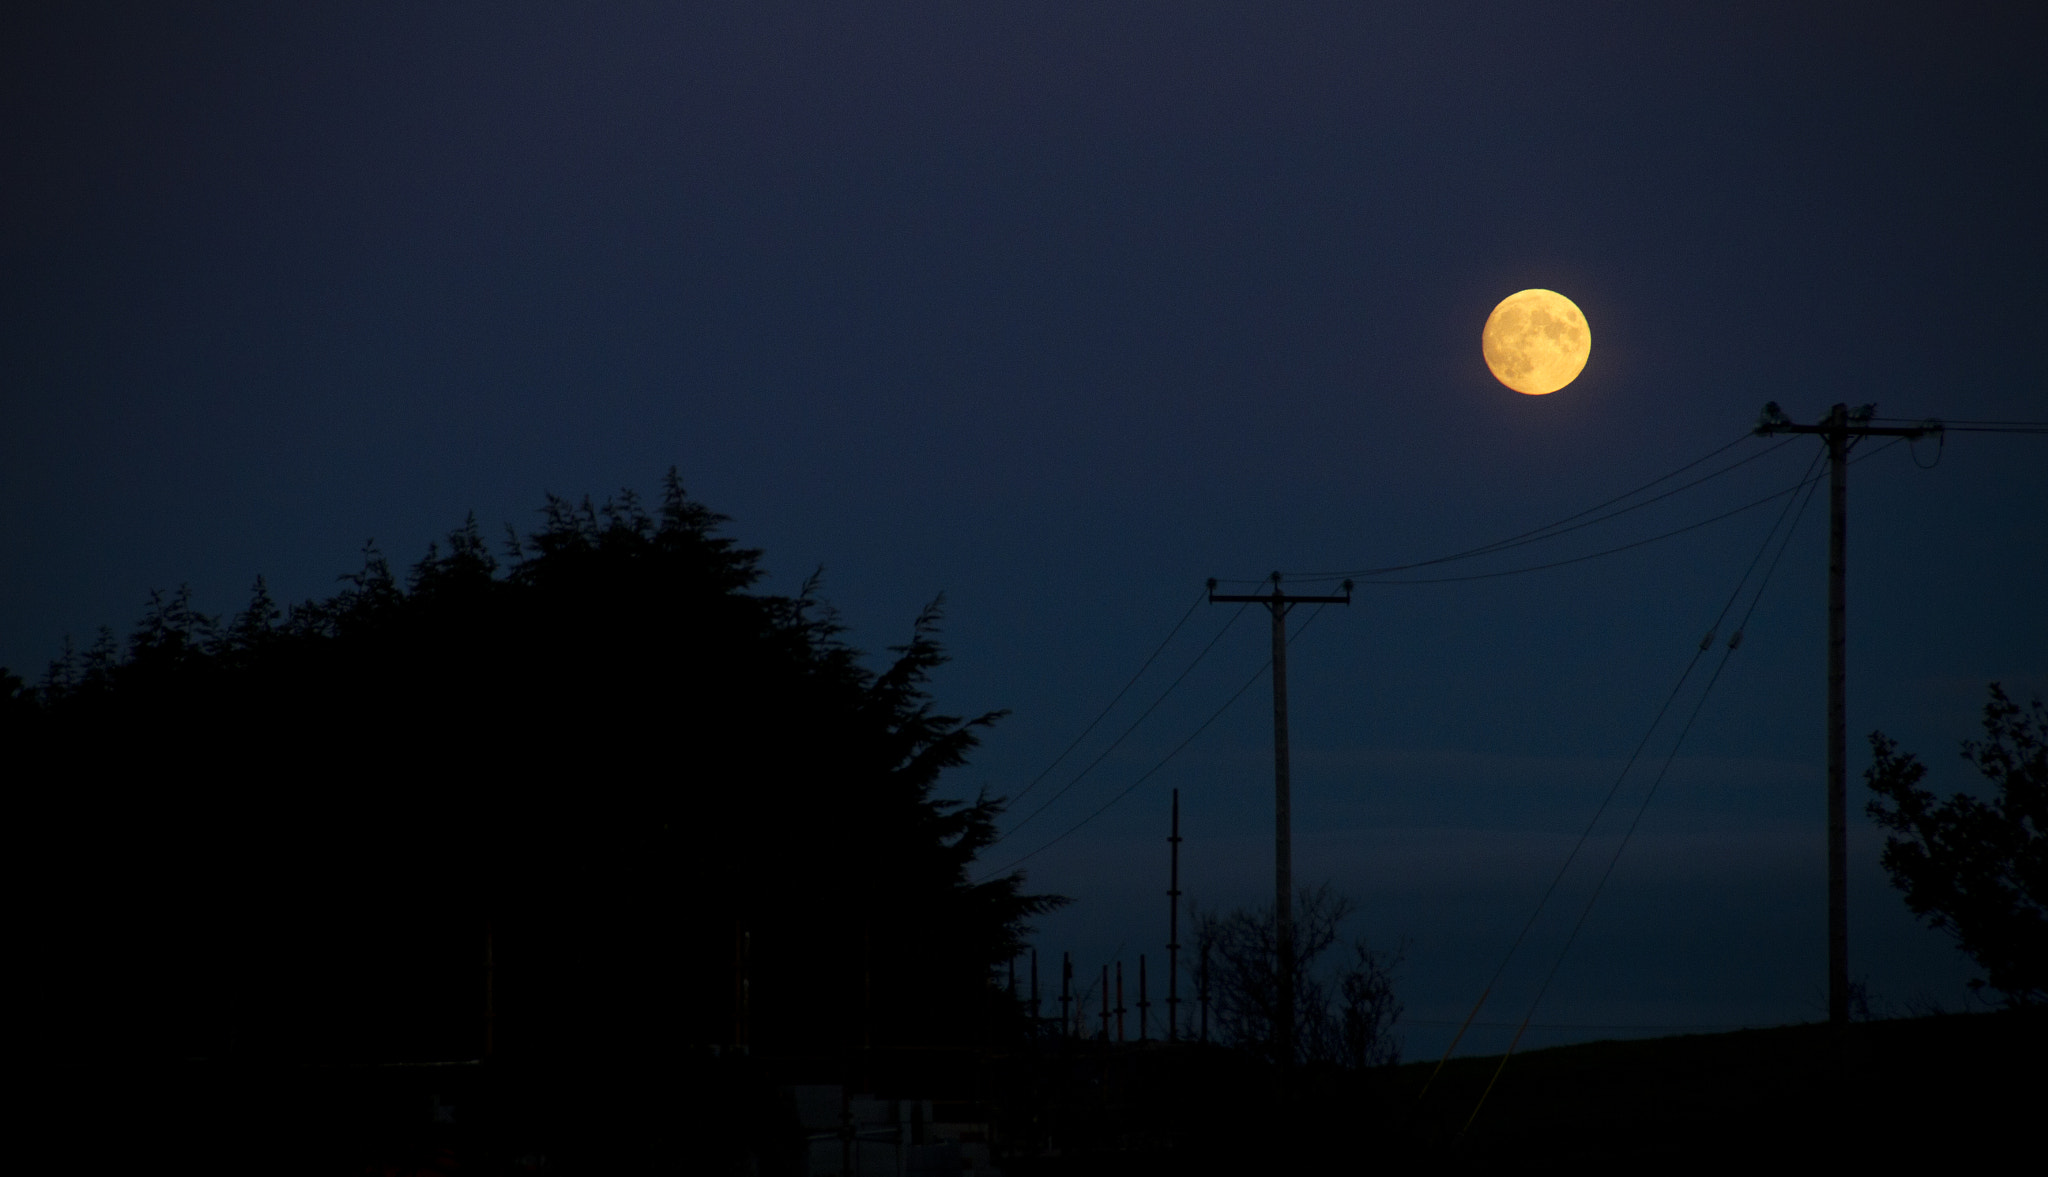 Photograph Moonrise by Eoin McDonagh on 500px